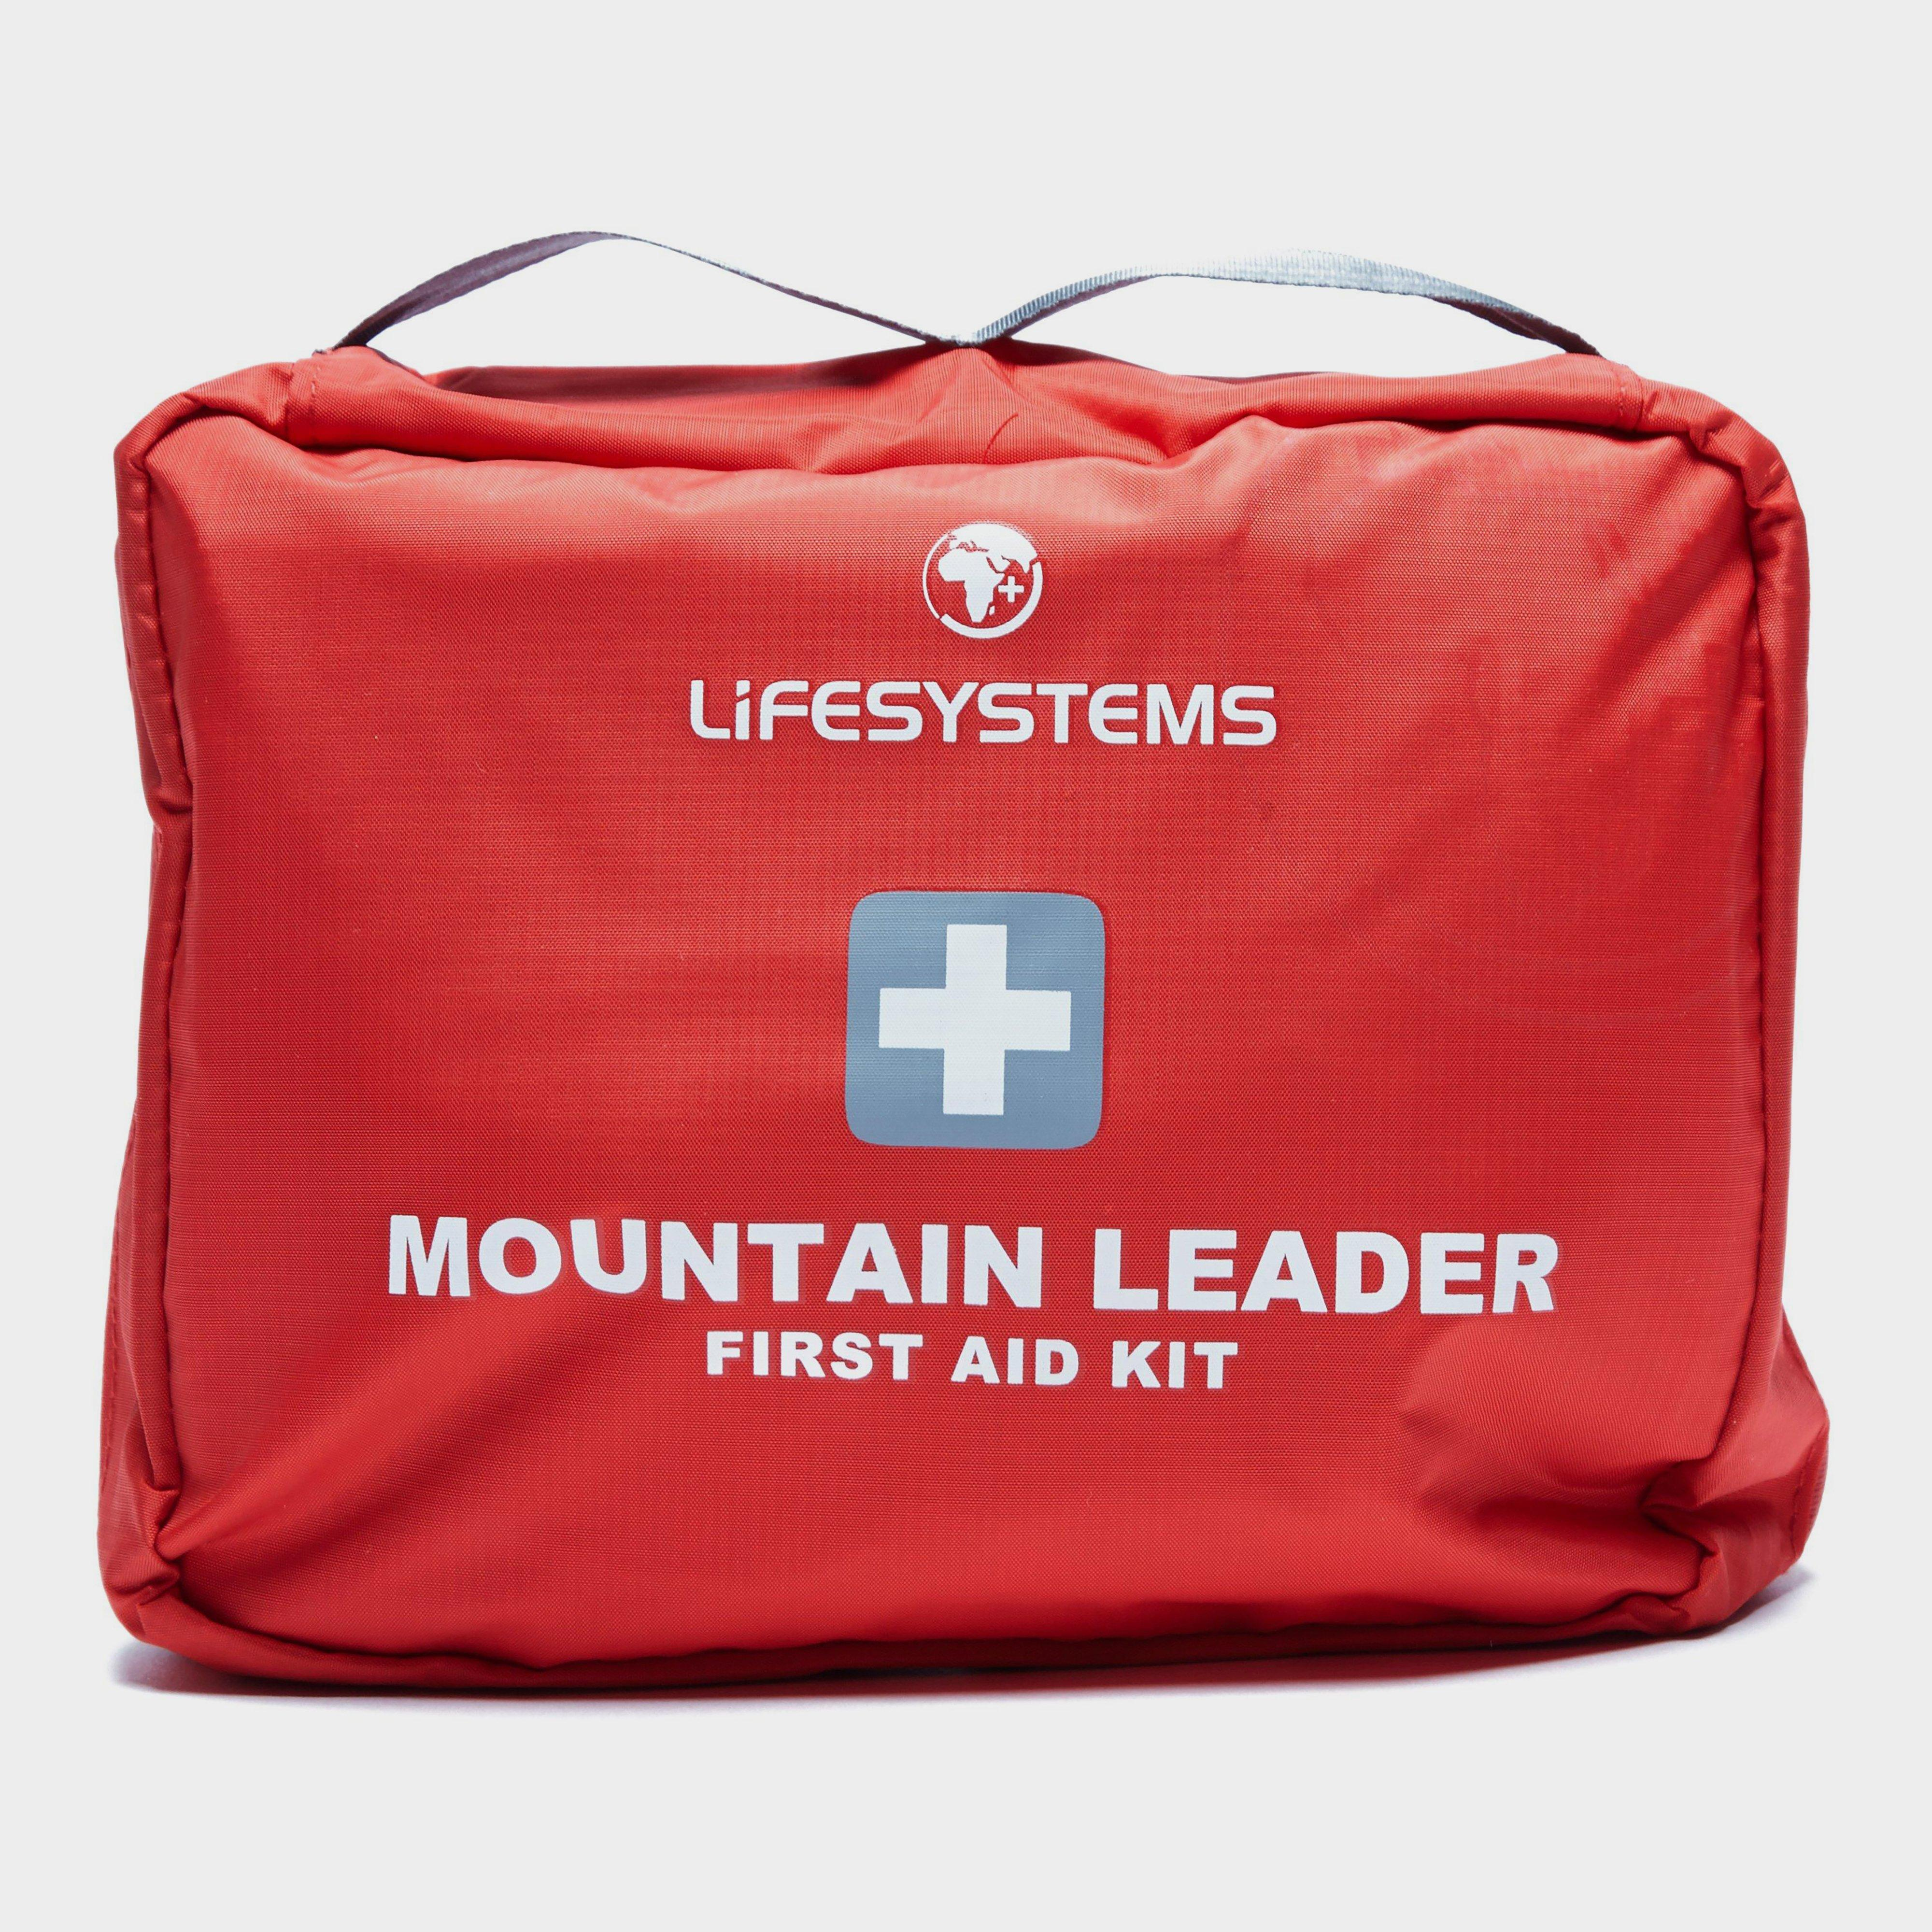 Lifesystems Lifesystems Mountain Leader First Aid Kit - Red, Red